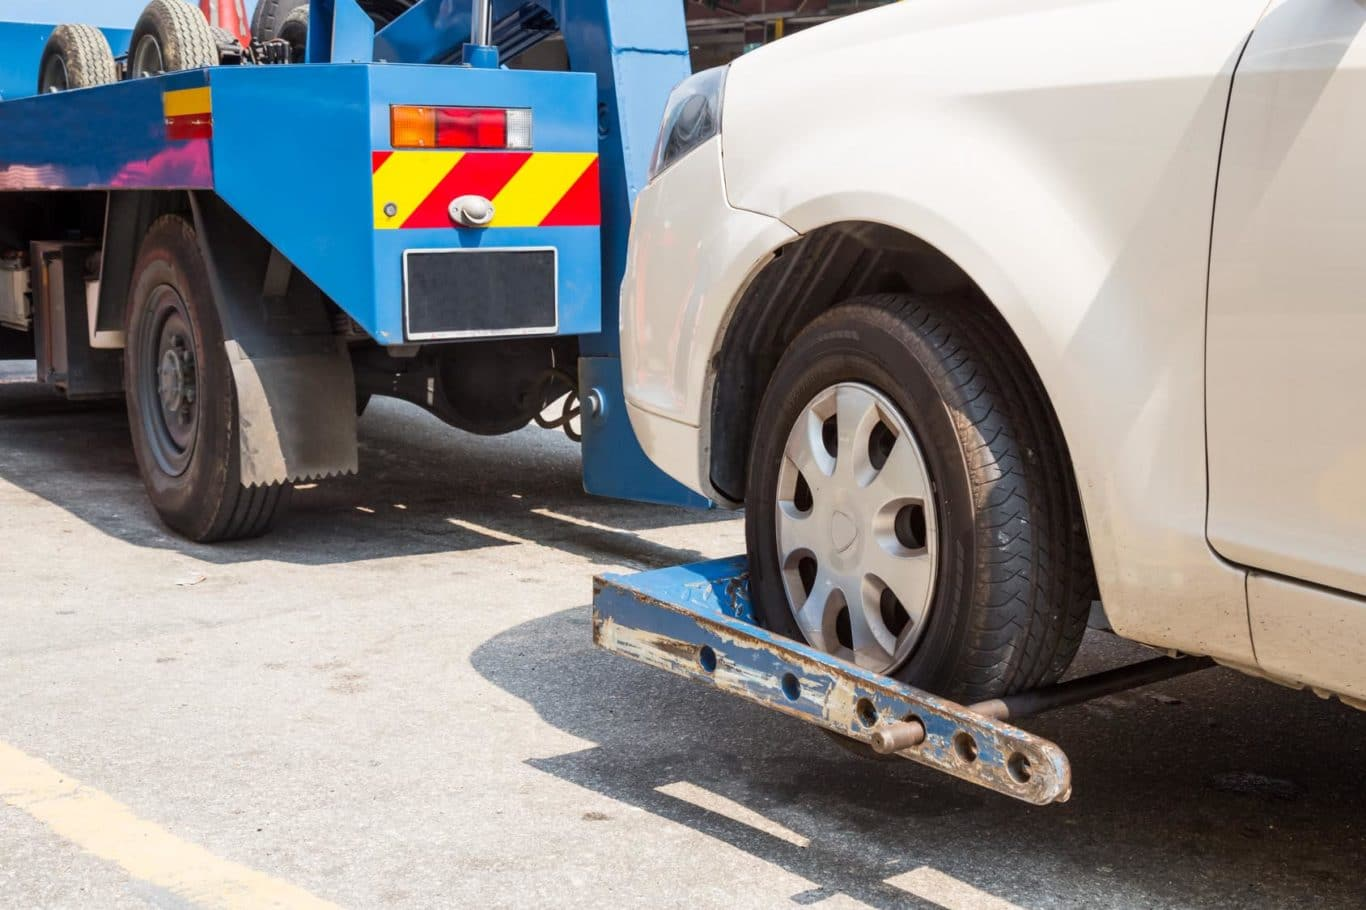 Dublin 15 (D15) Fingal expert Car Towing services